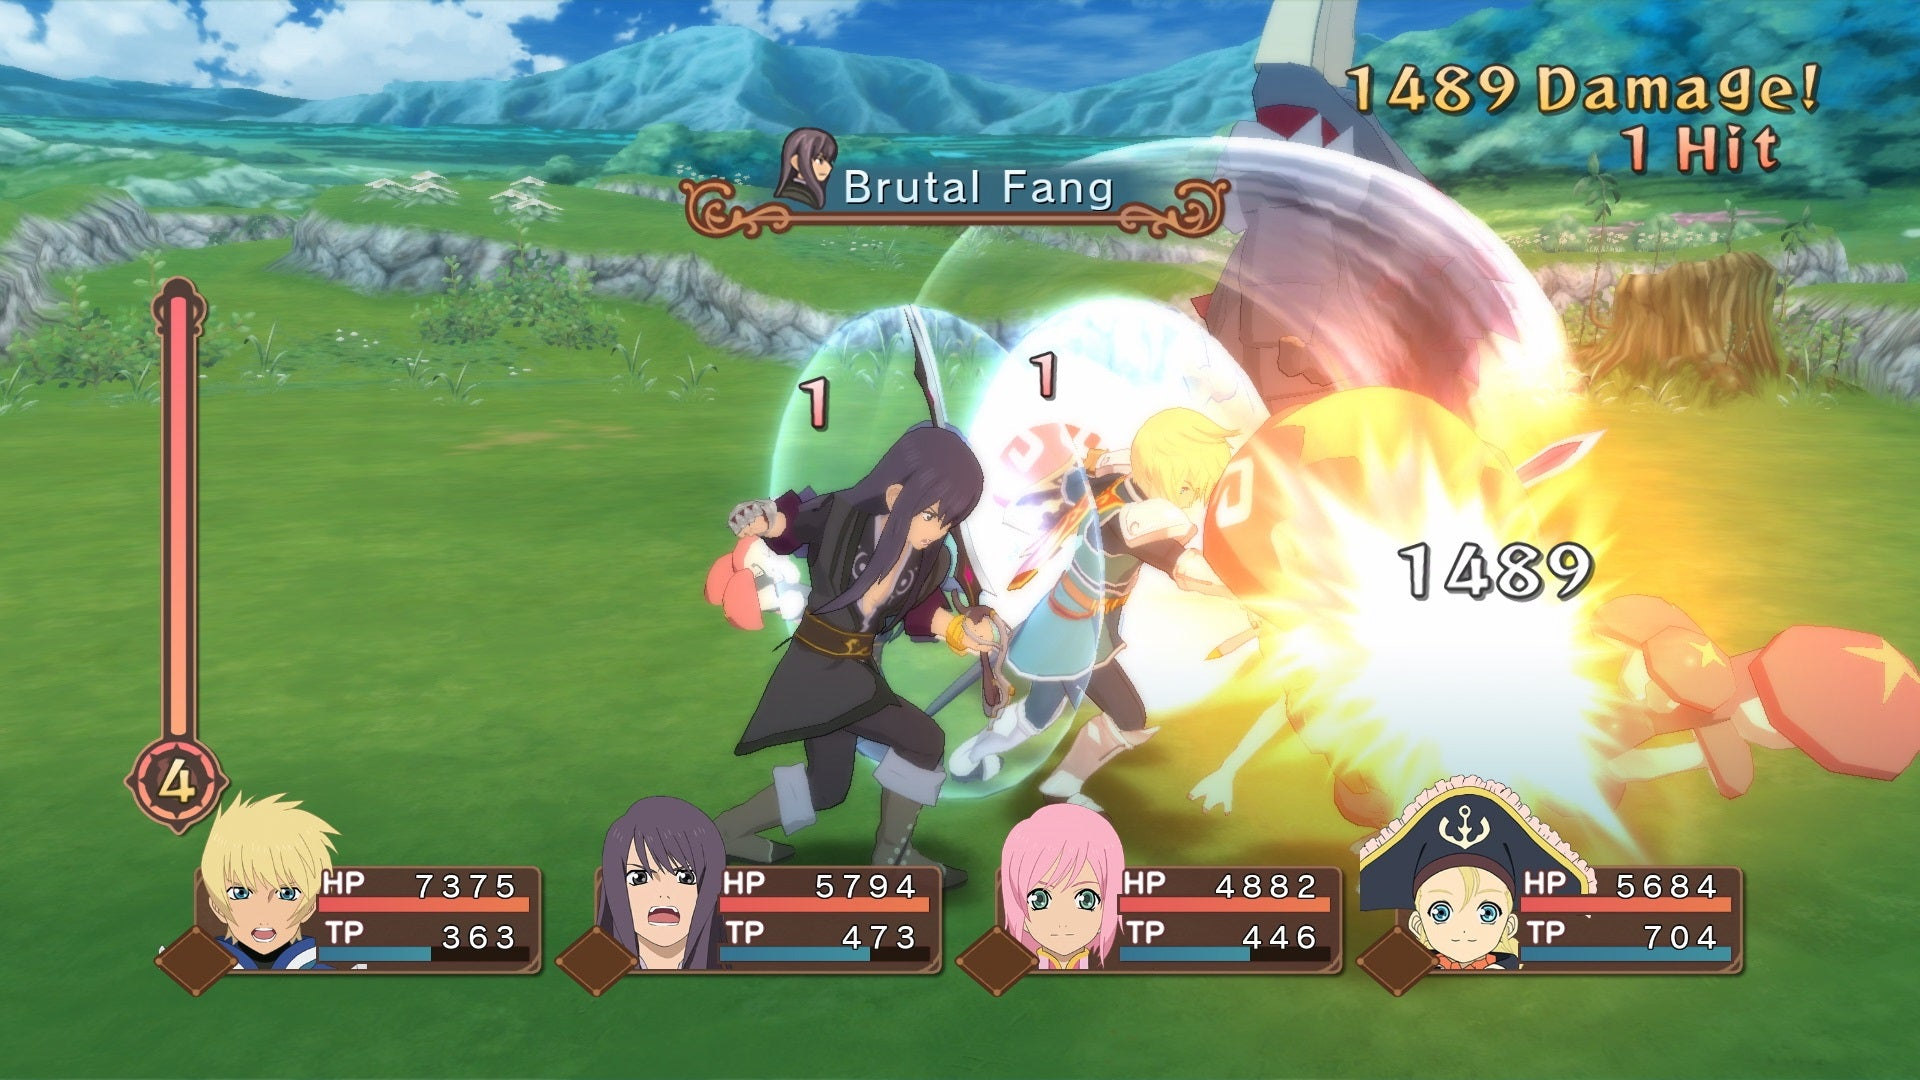 Tales of Vesperia is shaping up to be one of the best JRPG titles on PC.